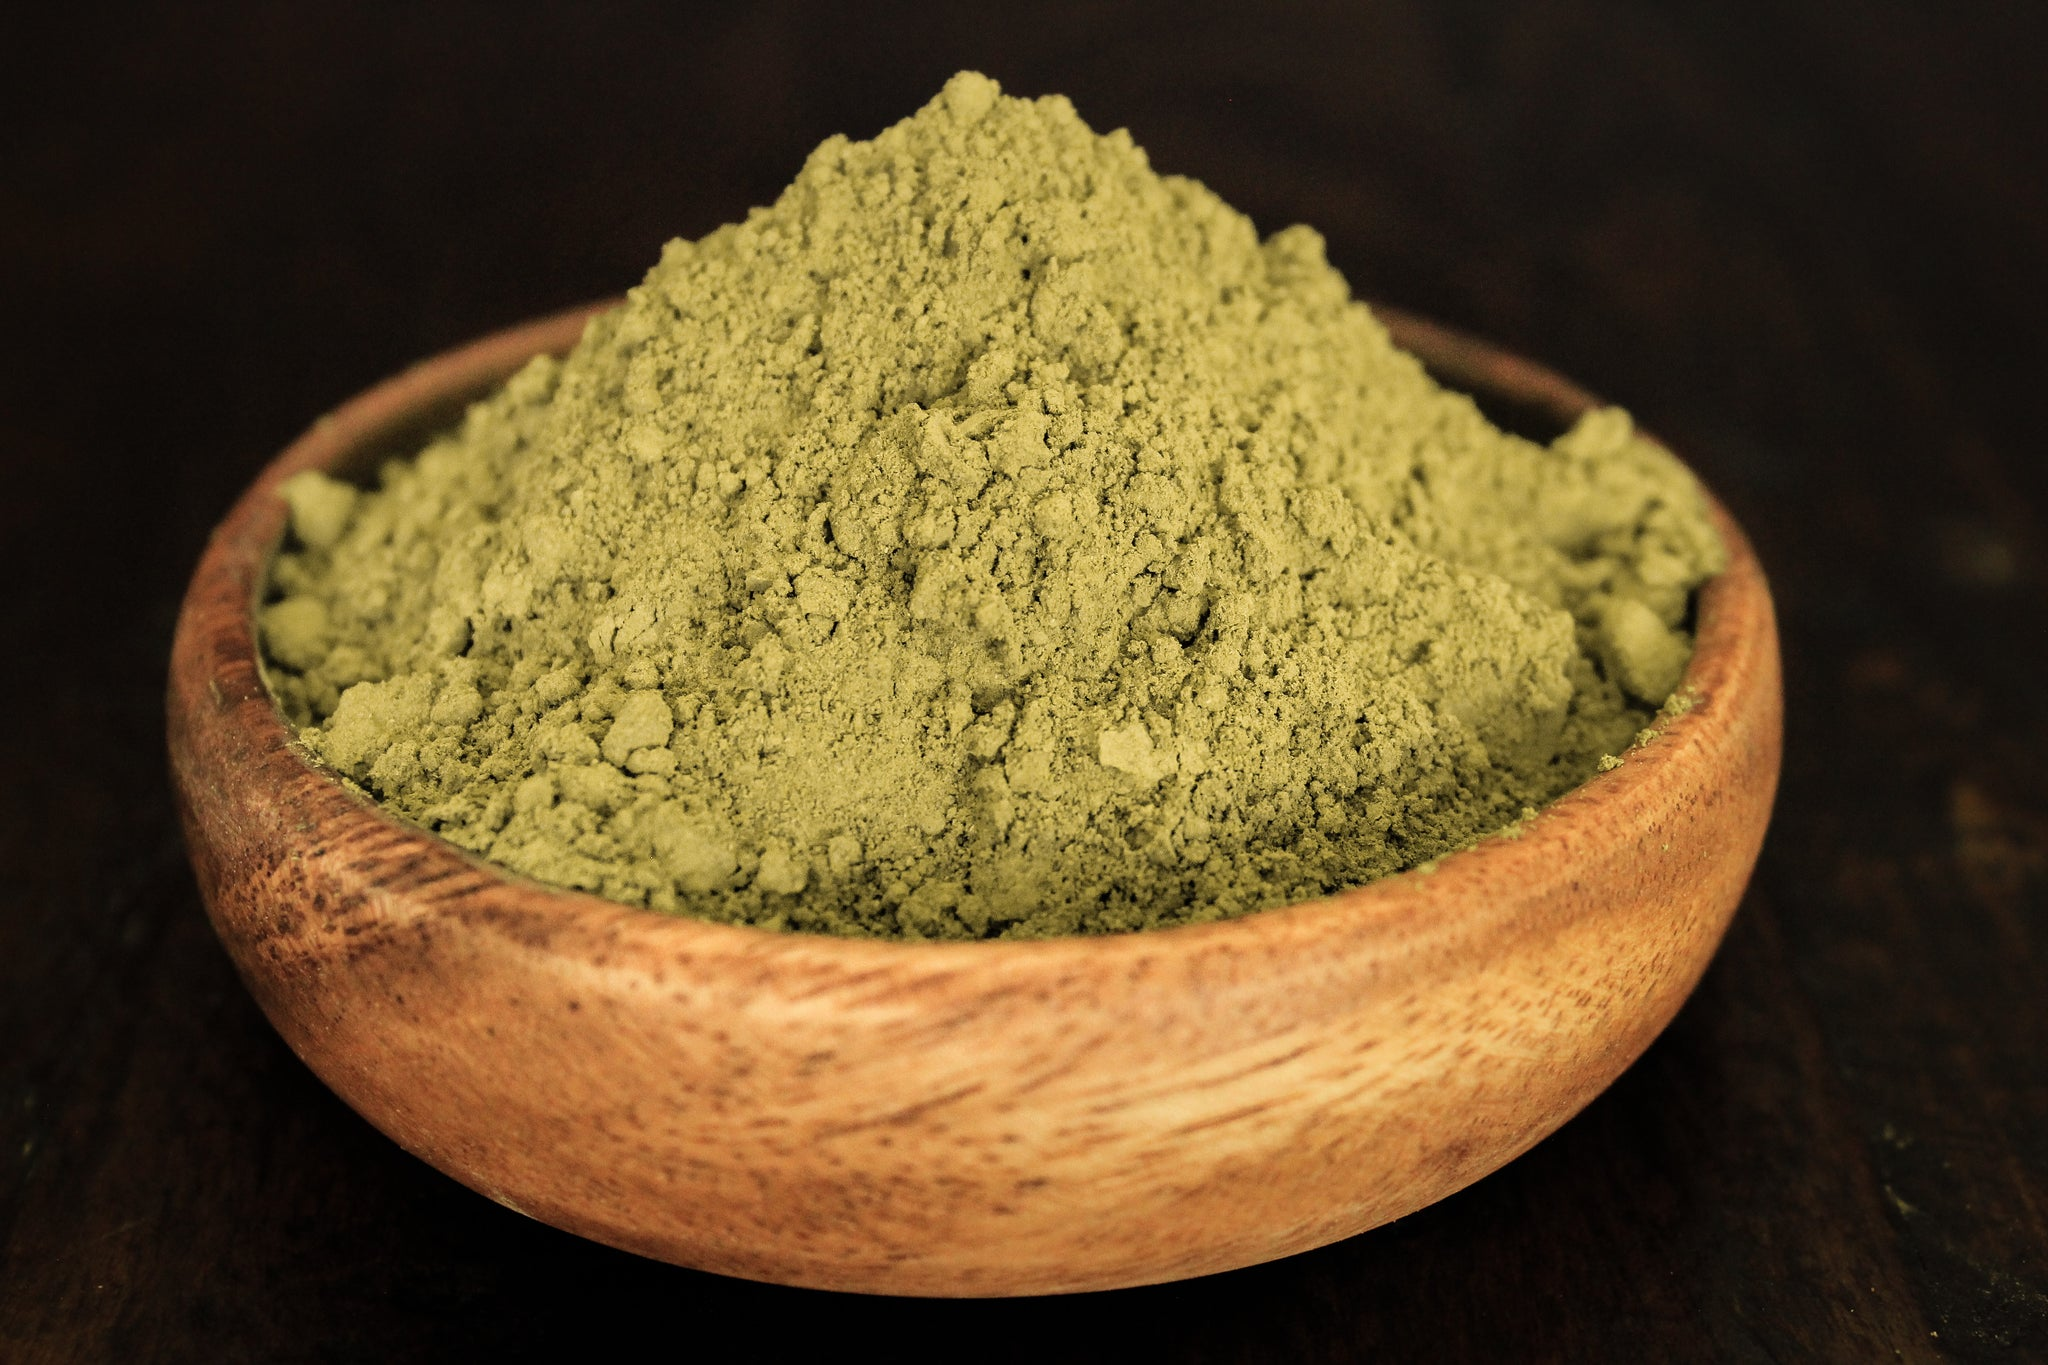 Pure natural white sumatra kratom powder in a wooden bowl